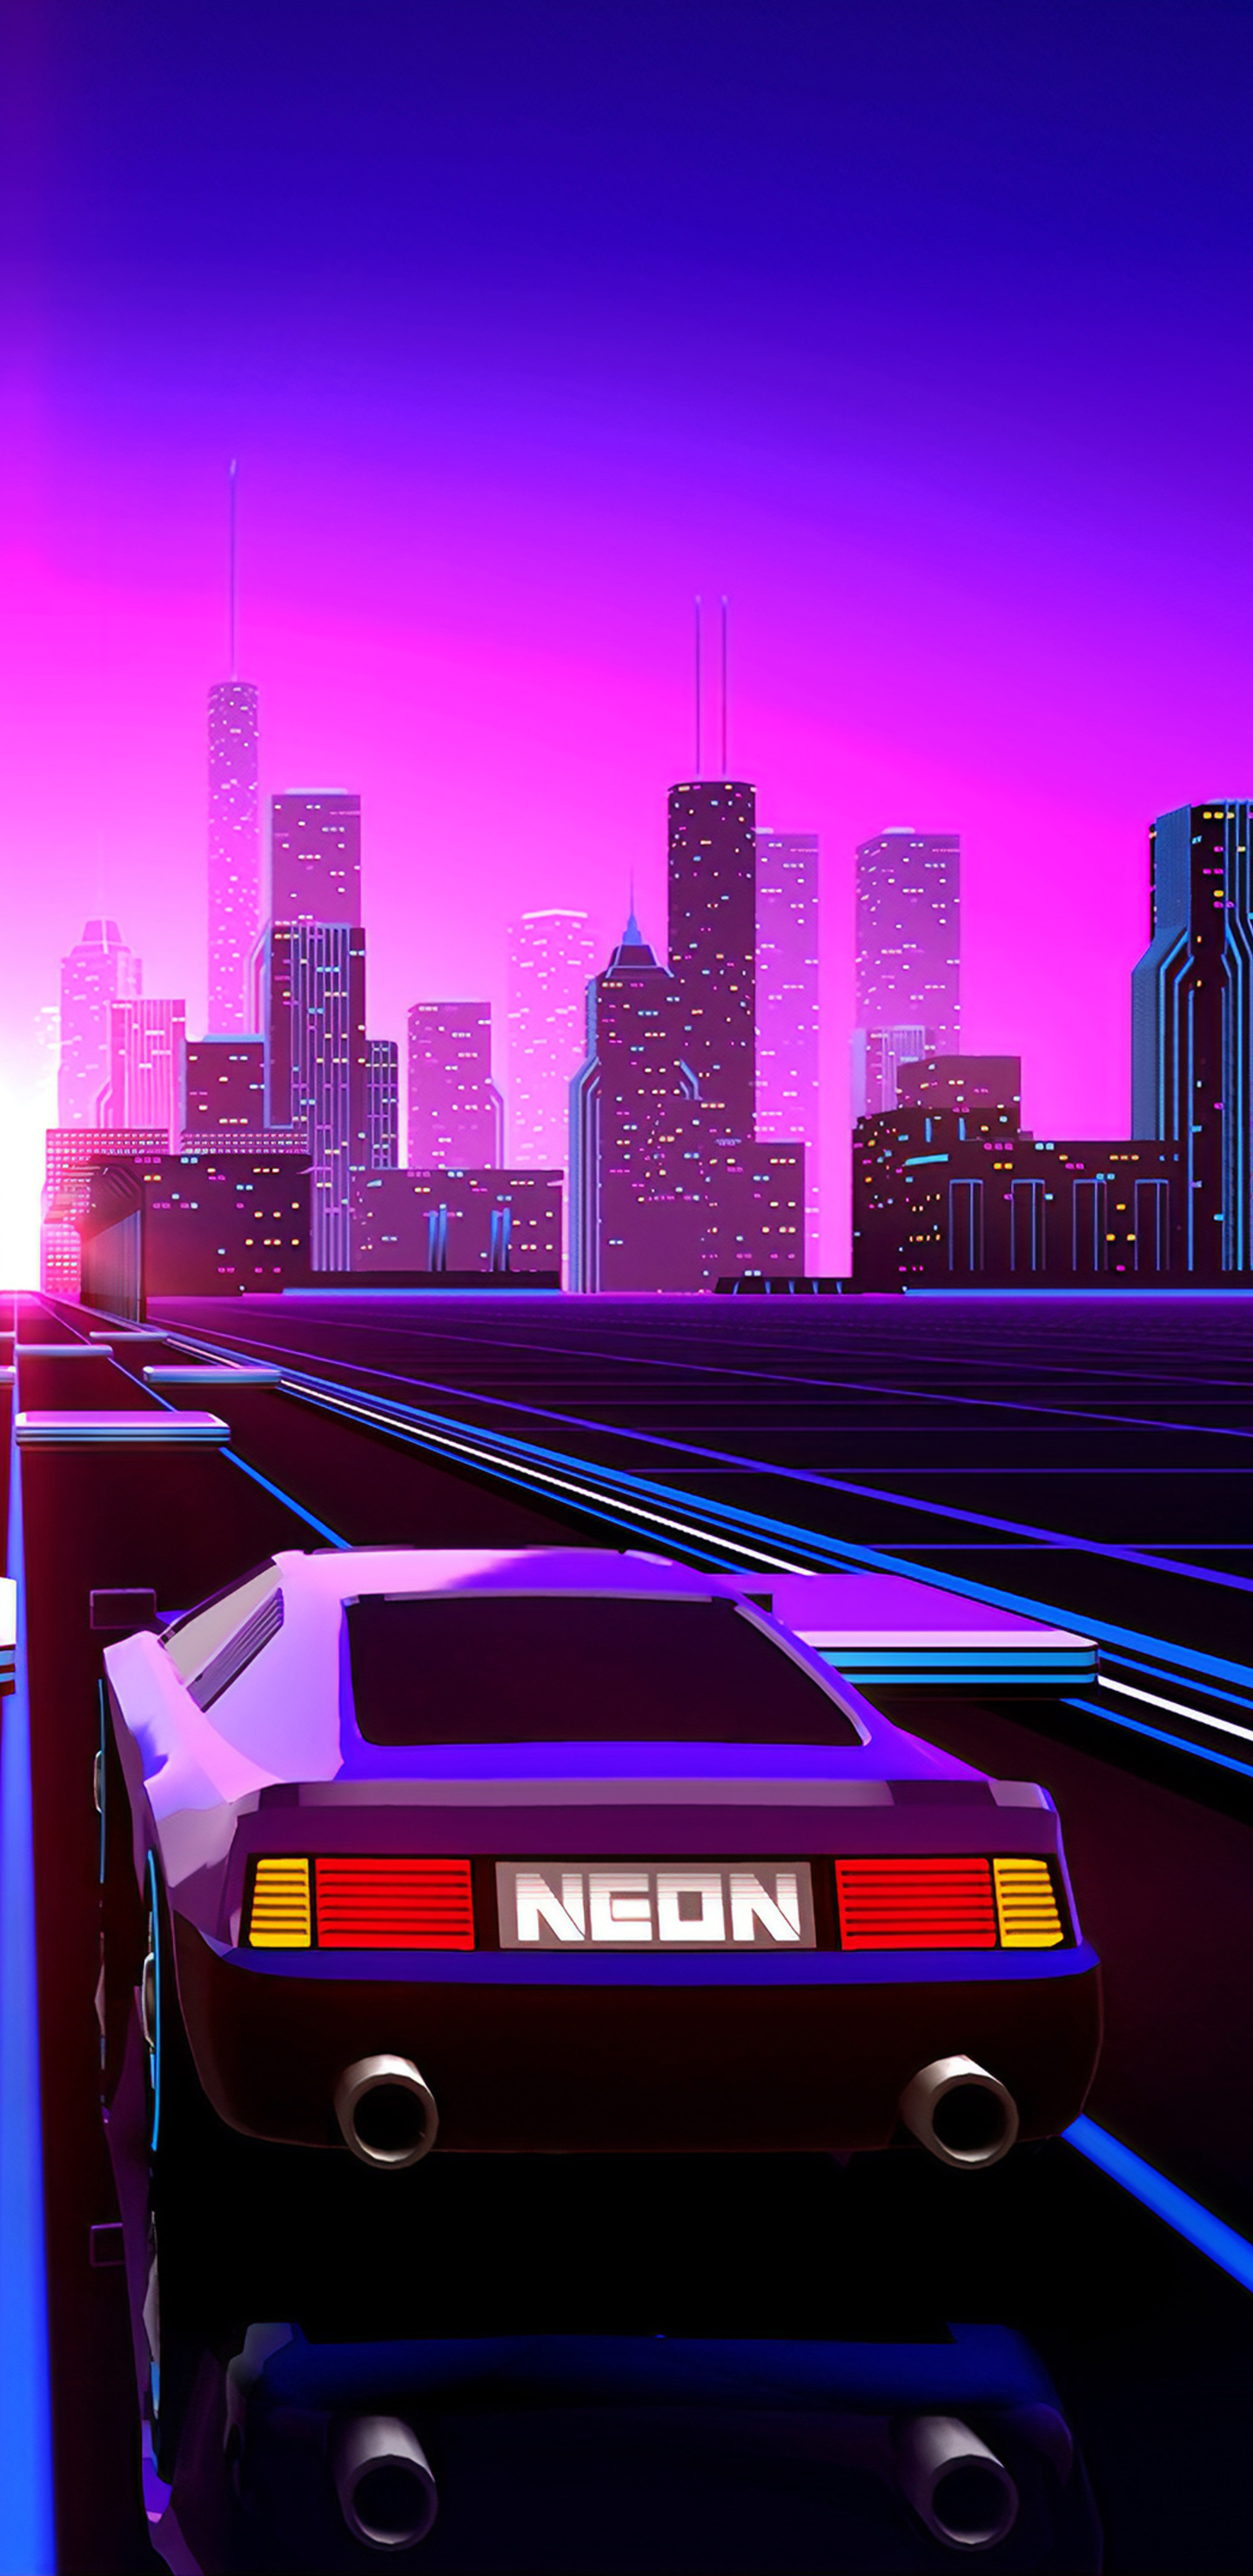 Way To Retrowave City In 1440x2960 Resolution Cool Wallpapers For Phones City Wallpaper Vaporwave Wallpaper